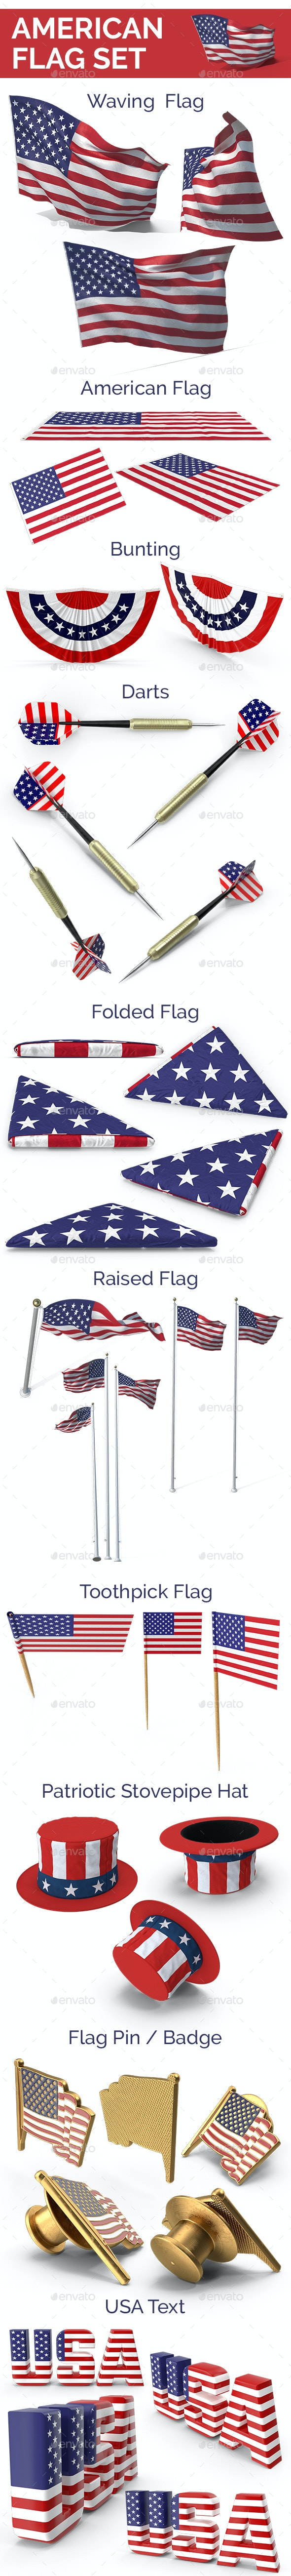 American Flag Set - Objects 3D Renders